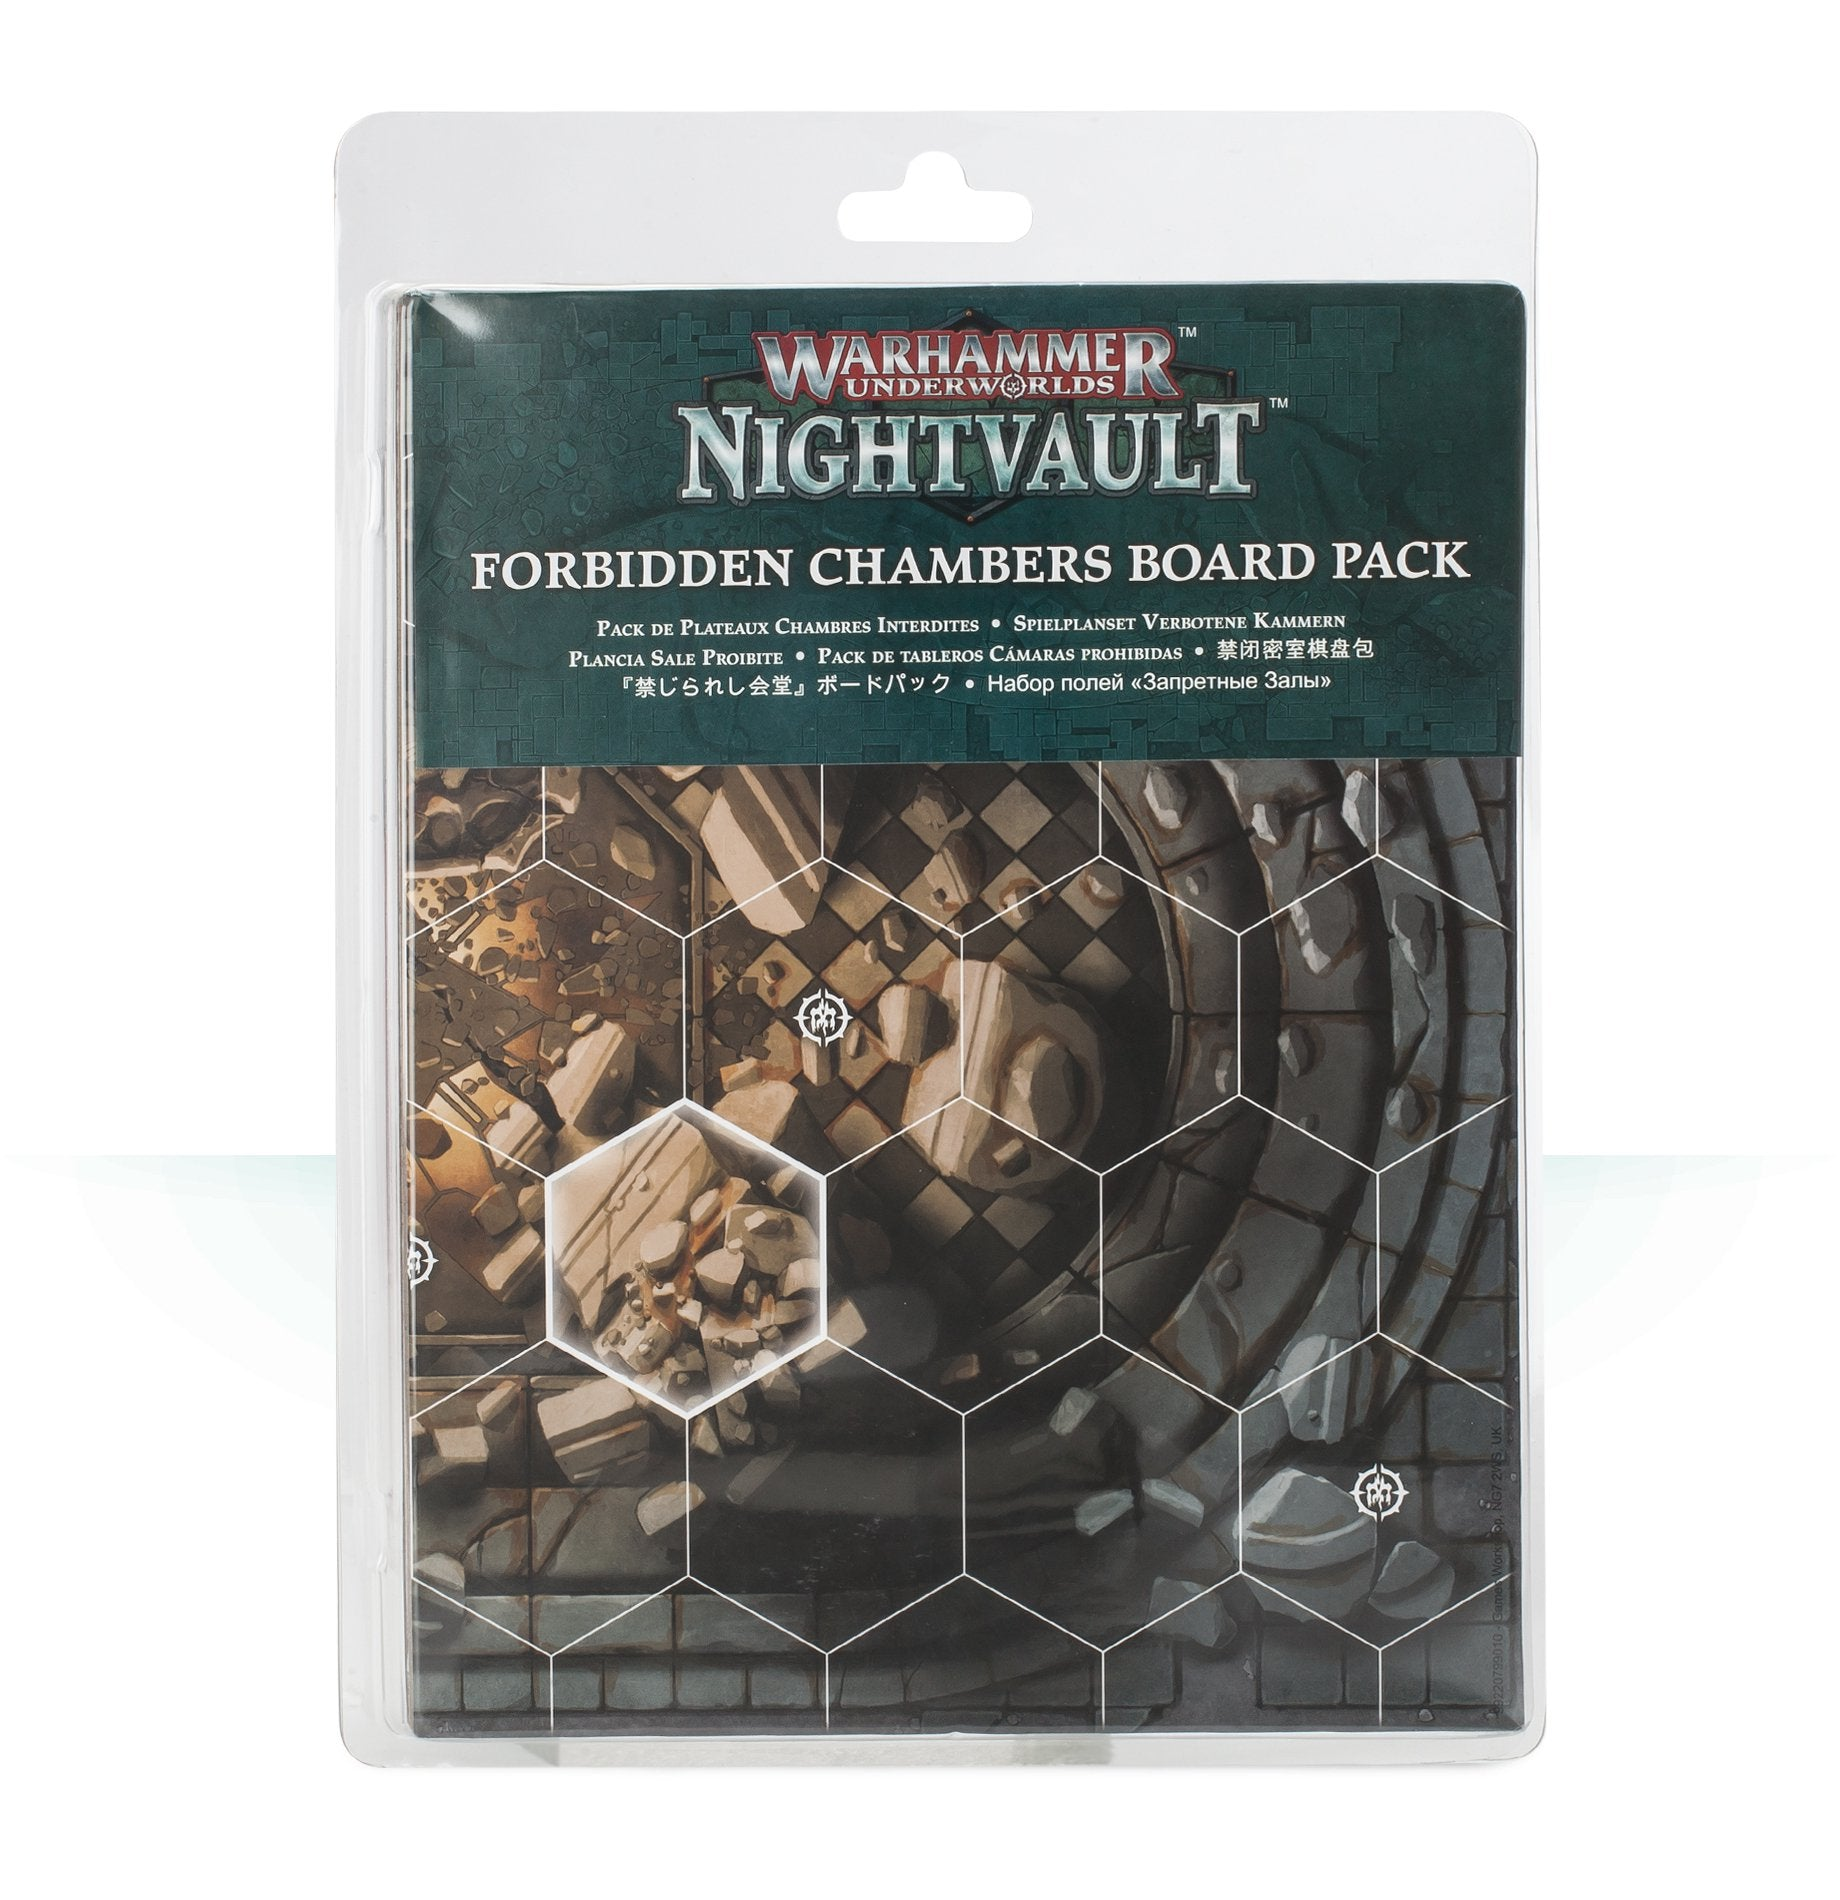 Nightvault Forbidden Chambers Board Pack | Mythicos